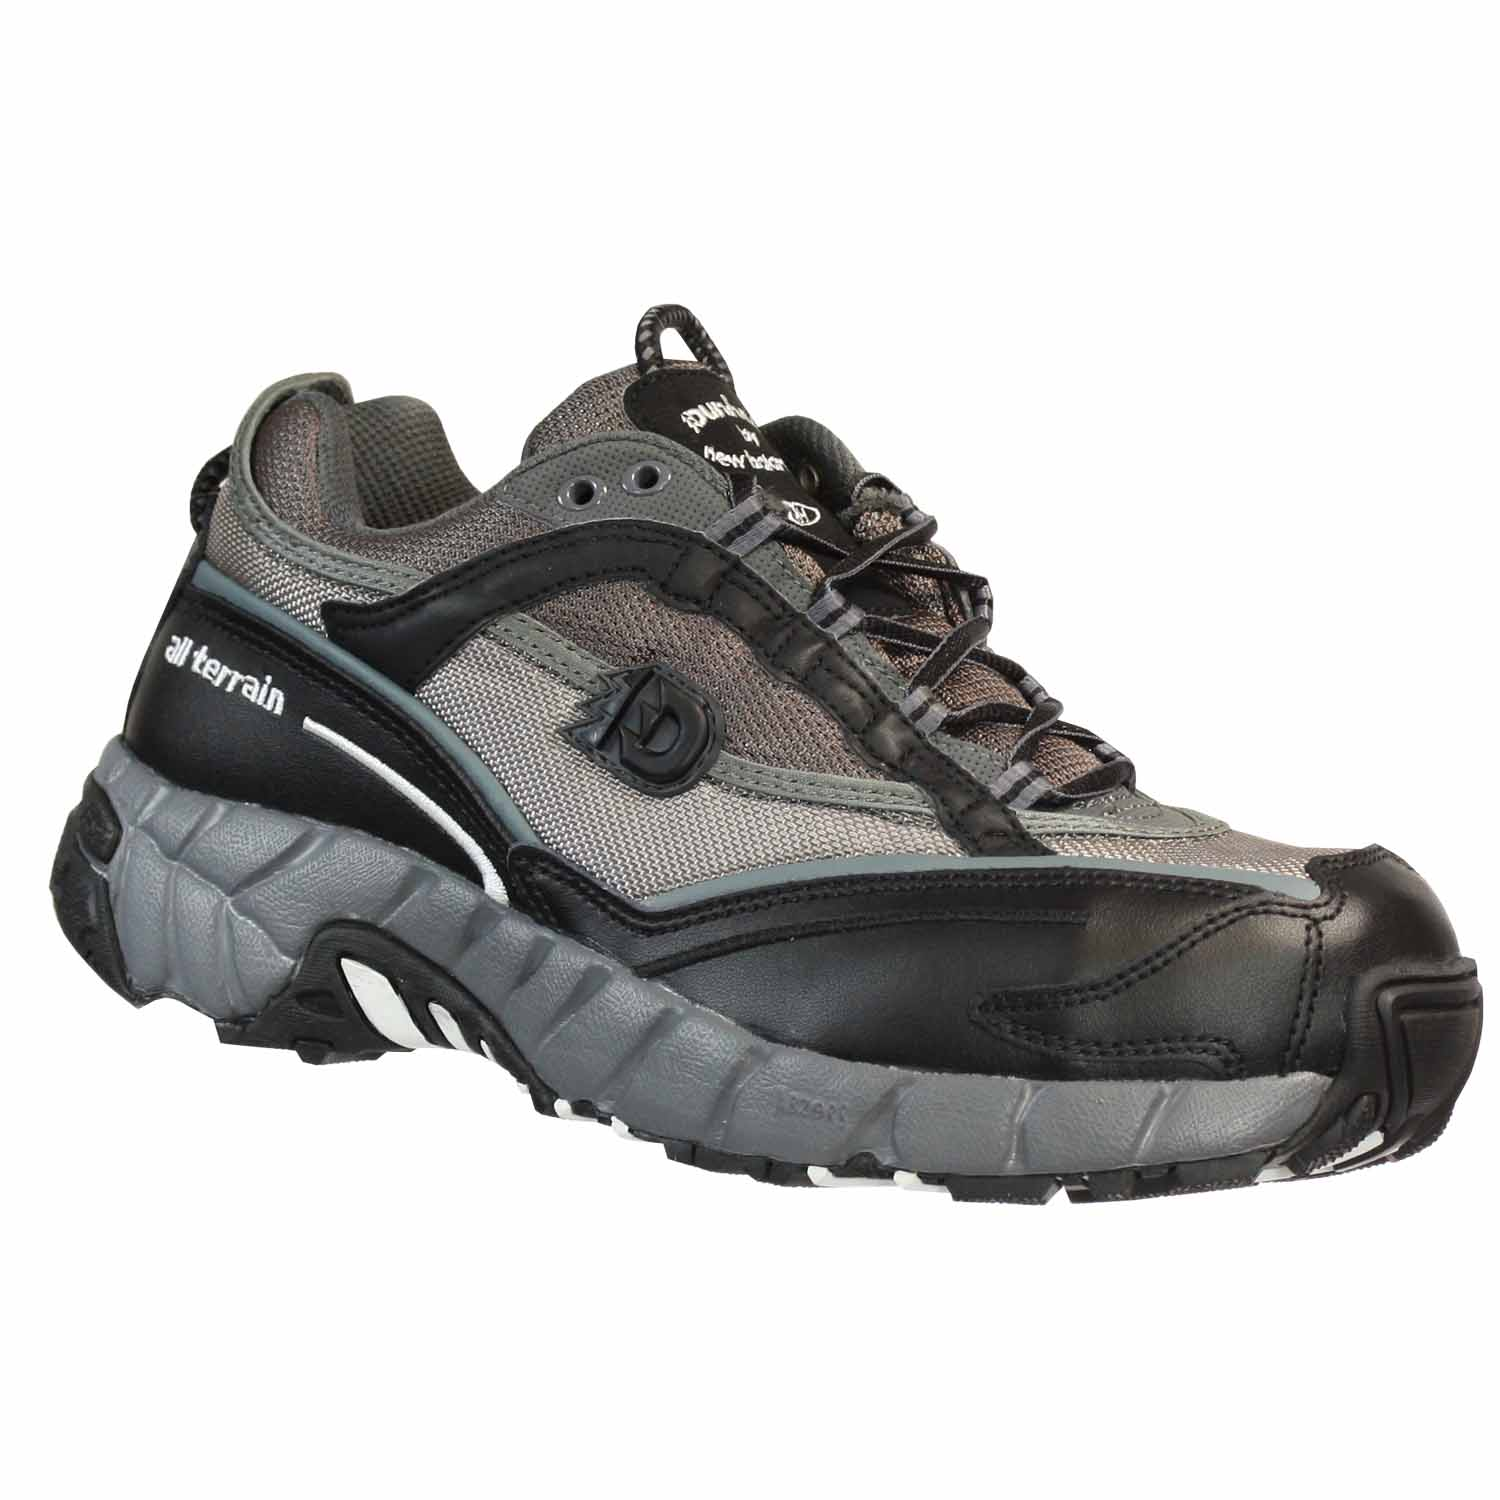 Dunham New Balance 8702 Mens Steel Toe Athletic Safety Shoes EH 8 EE by Dunham